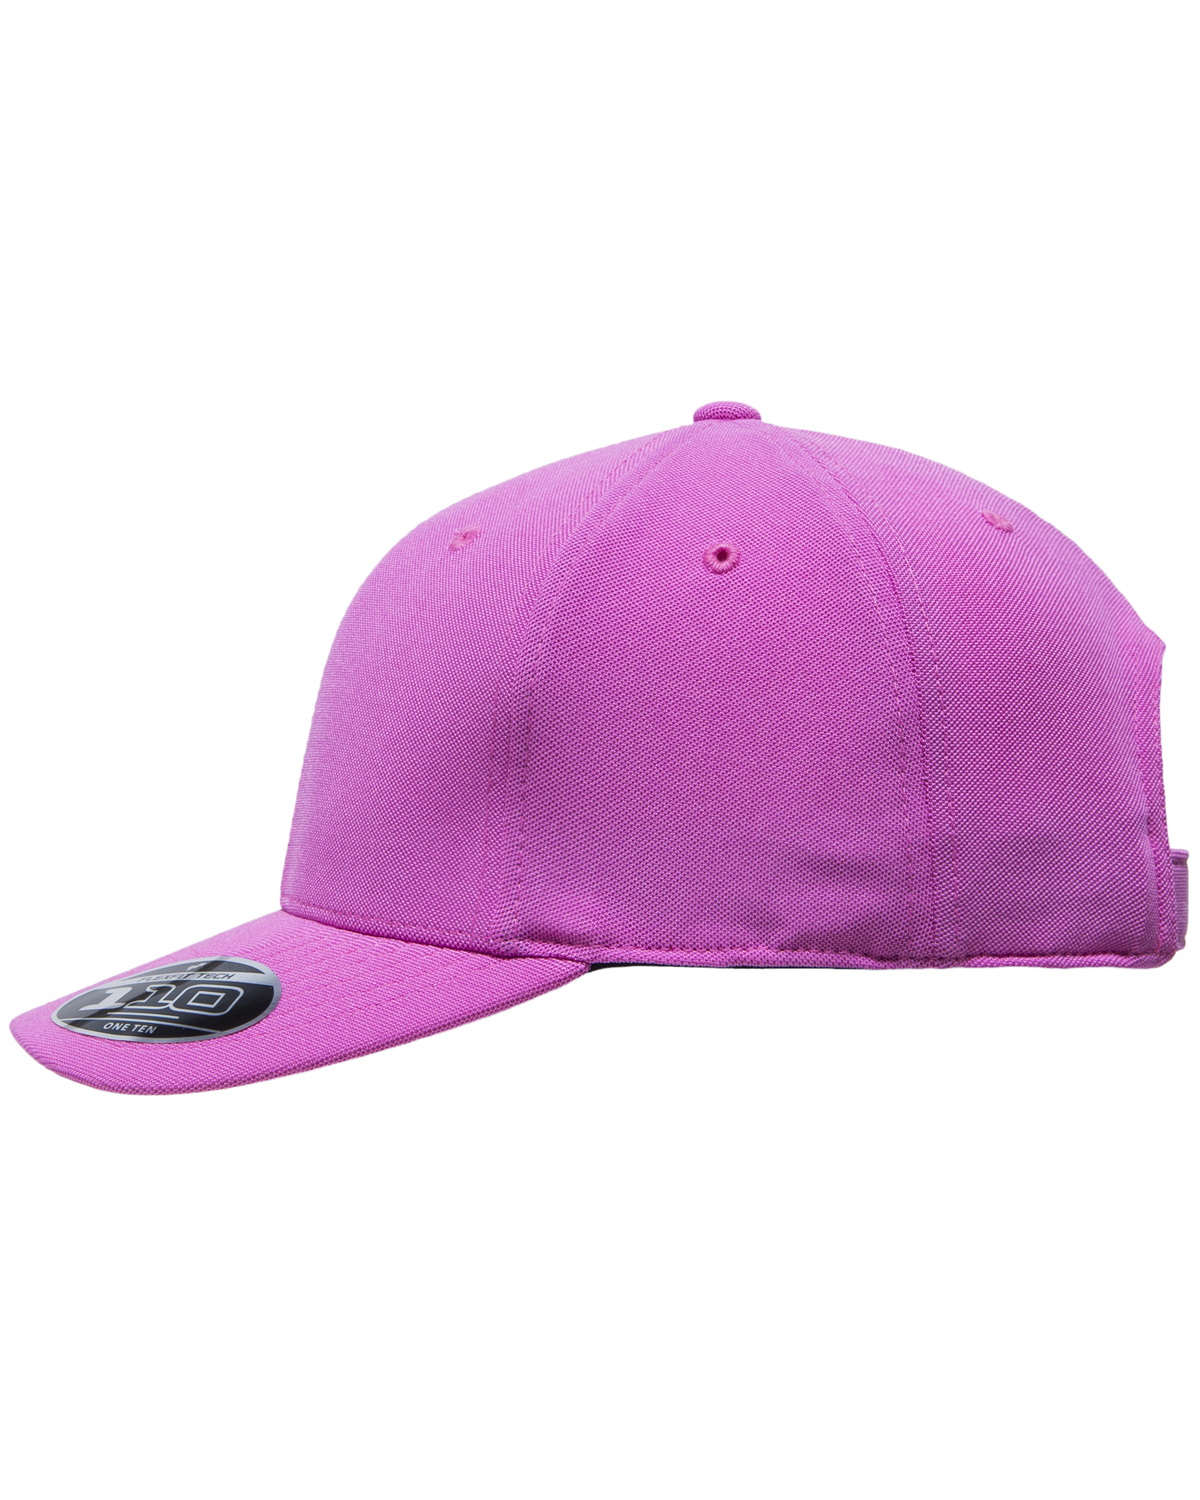 Flexfit for Team Cool /& Dry Mini Pique Performance Cap